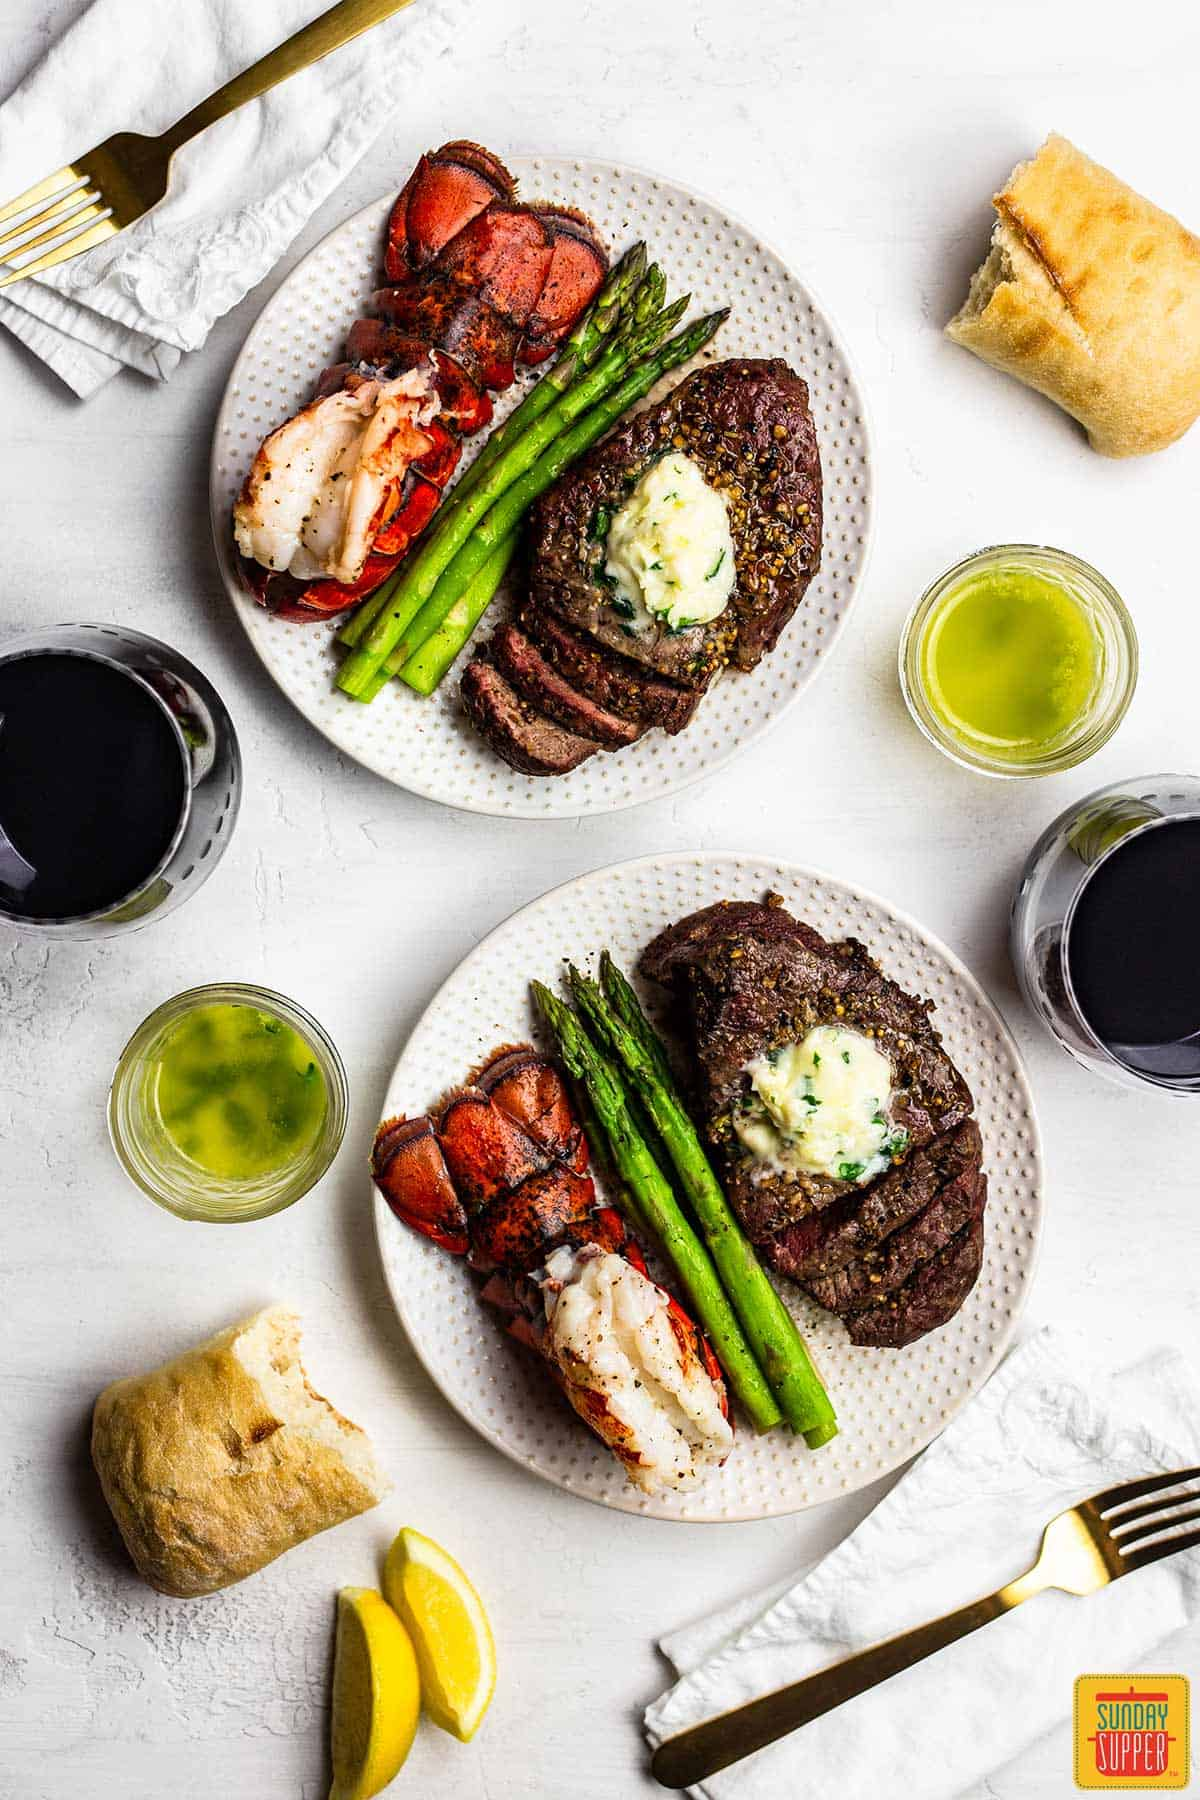 Simple dinner ideas for two: air fryer surf and turf on two plates